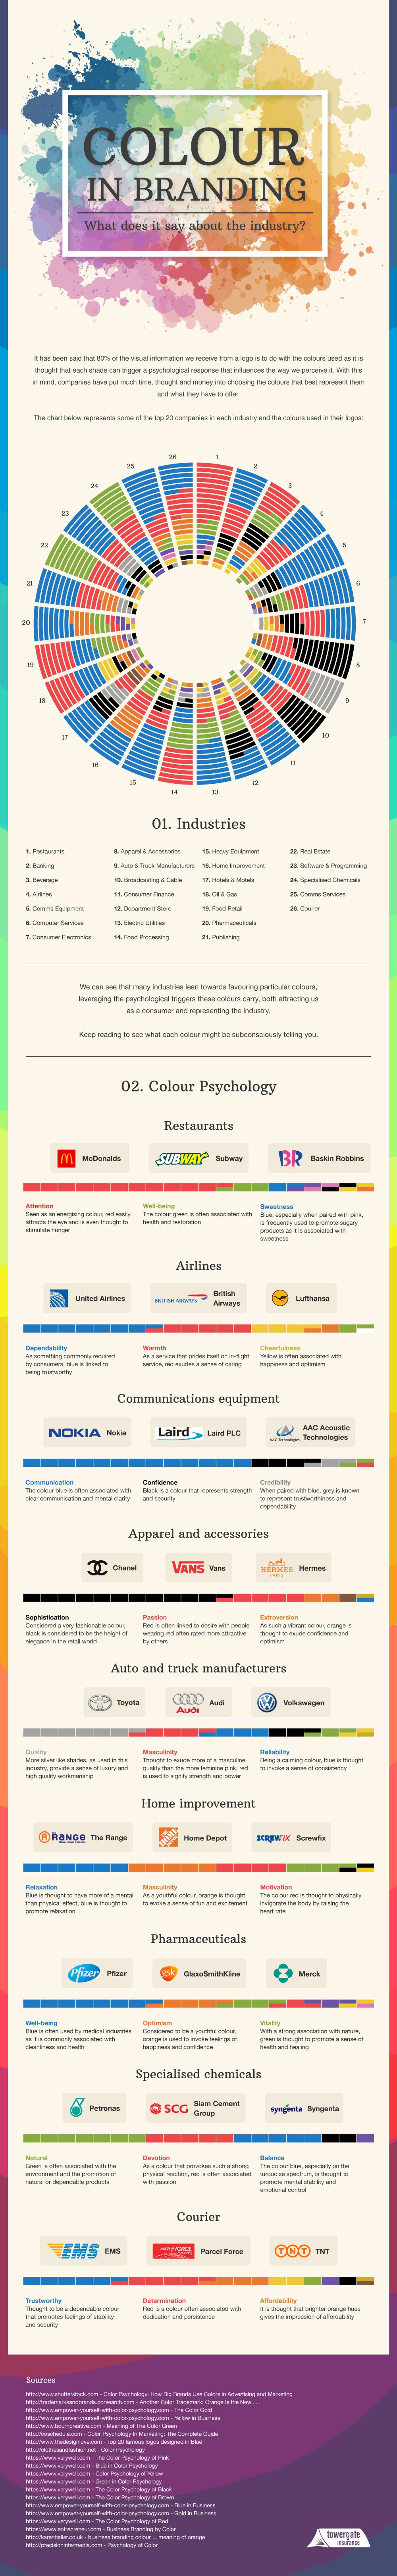 Colour In Branding #Infographic